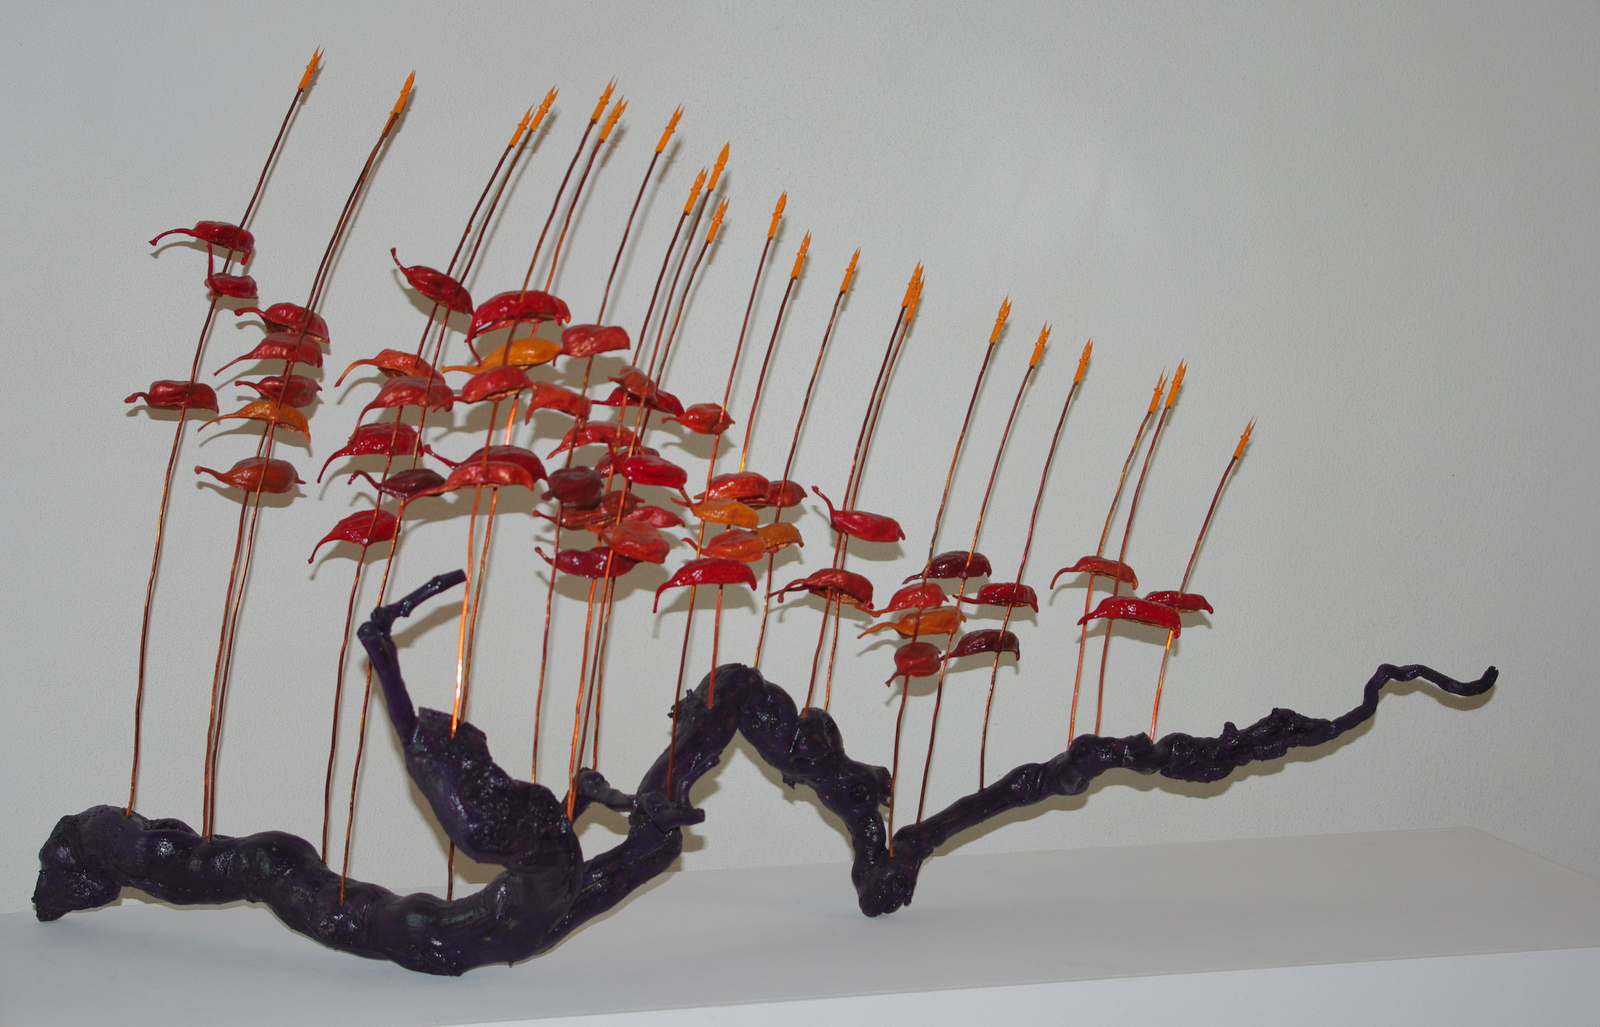 2014<br>110 x 30 x 60 cm<br>vine, copper wire, capsules, crown nibs